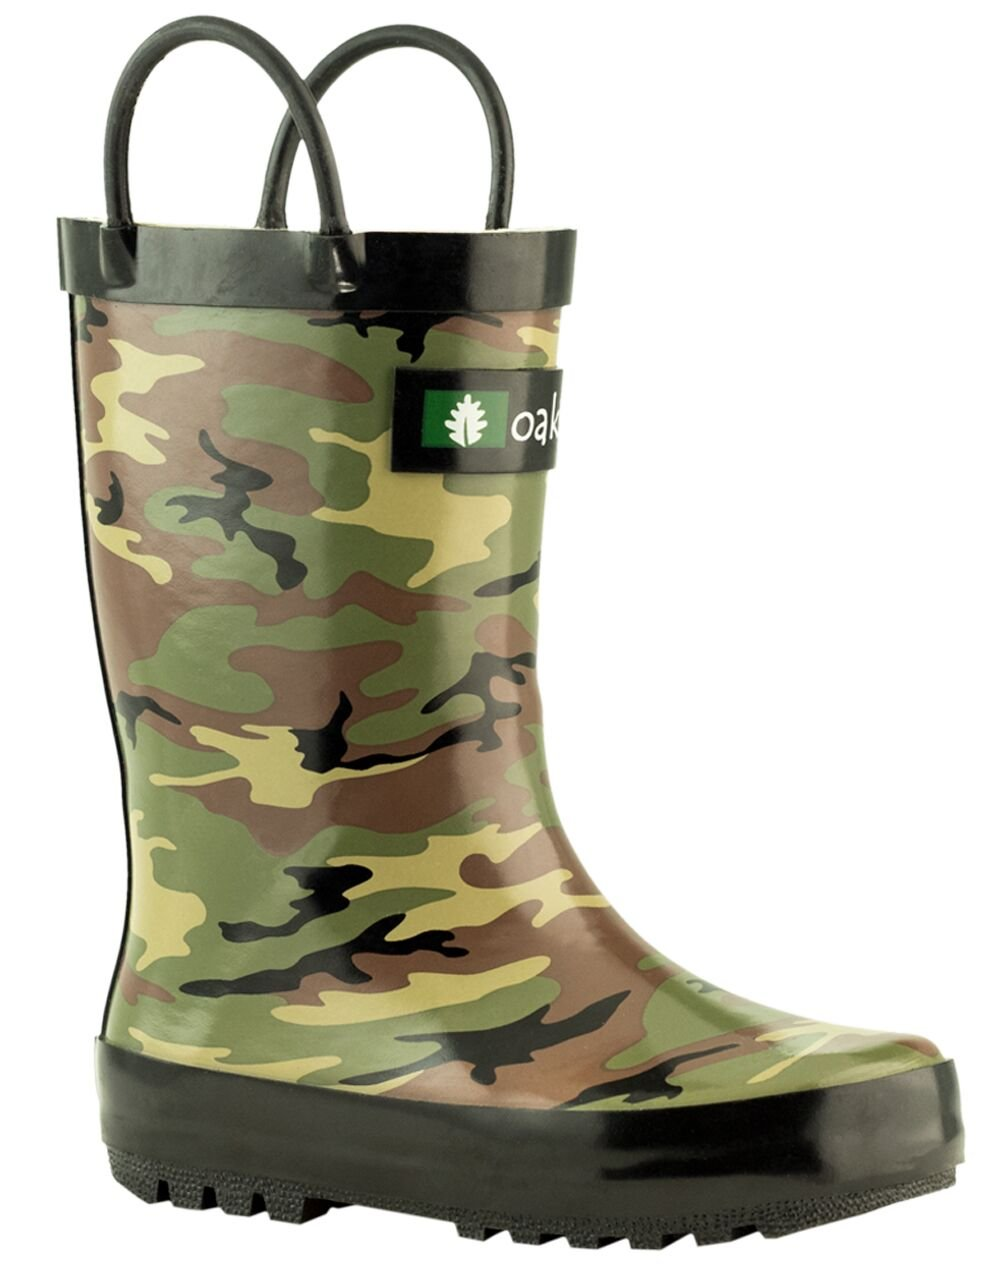 OAKI Kids Rubber Rain Boots with Easy-on Handles, Army Camo, 10T US Toddler